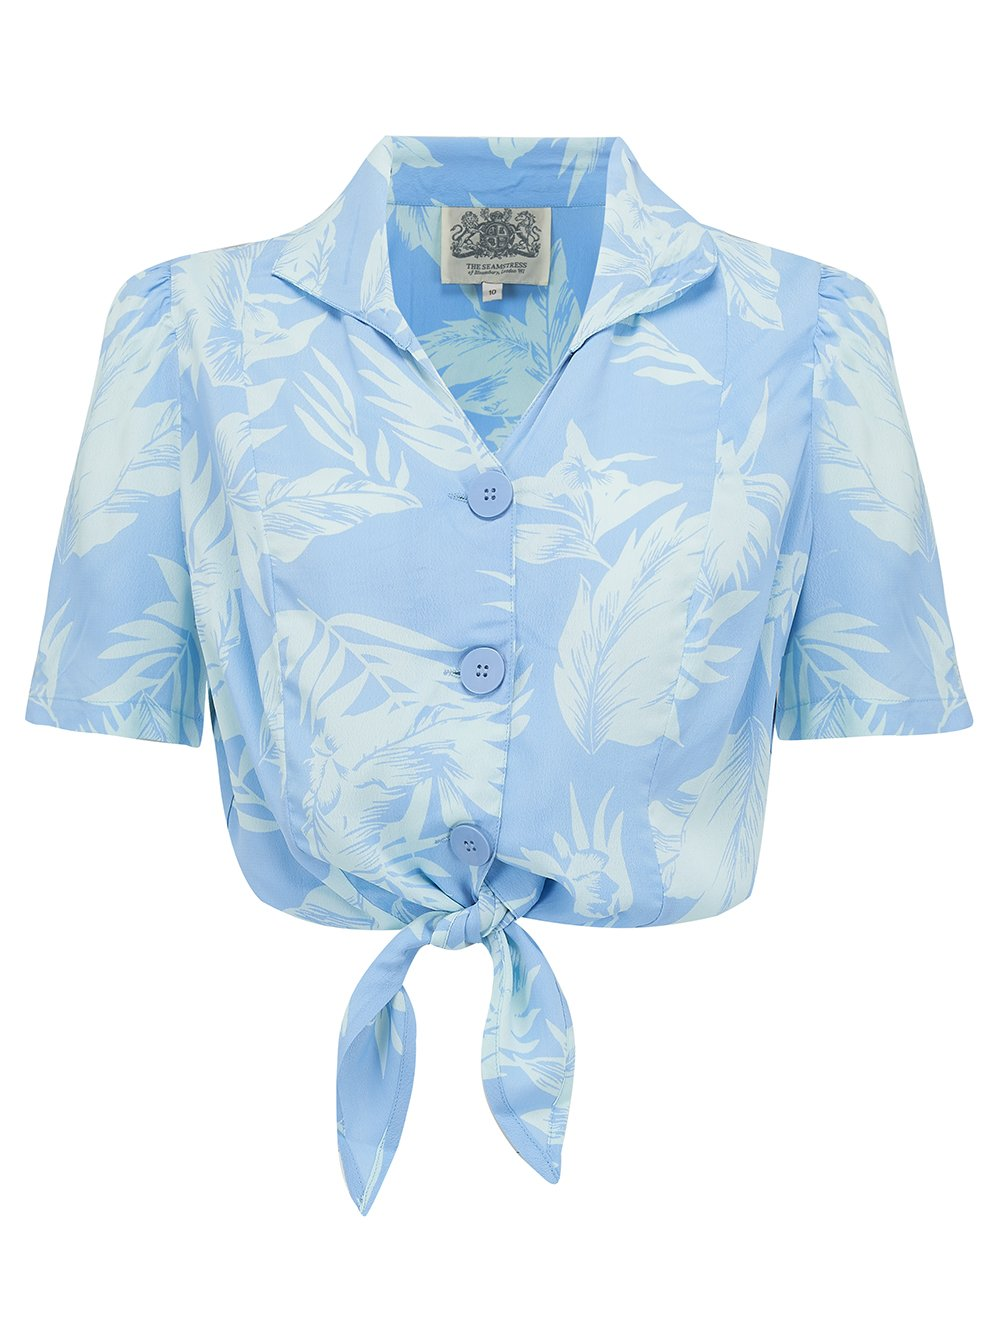 1940's Vintage Inspired 'Marilyn' Tie-Shirt in 'Blue Hawaii' by The Seamstress of Bloomsbury